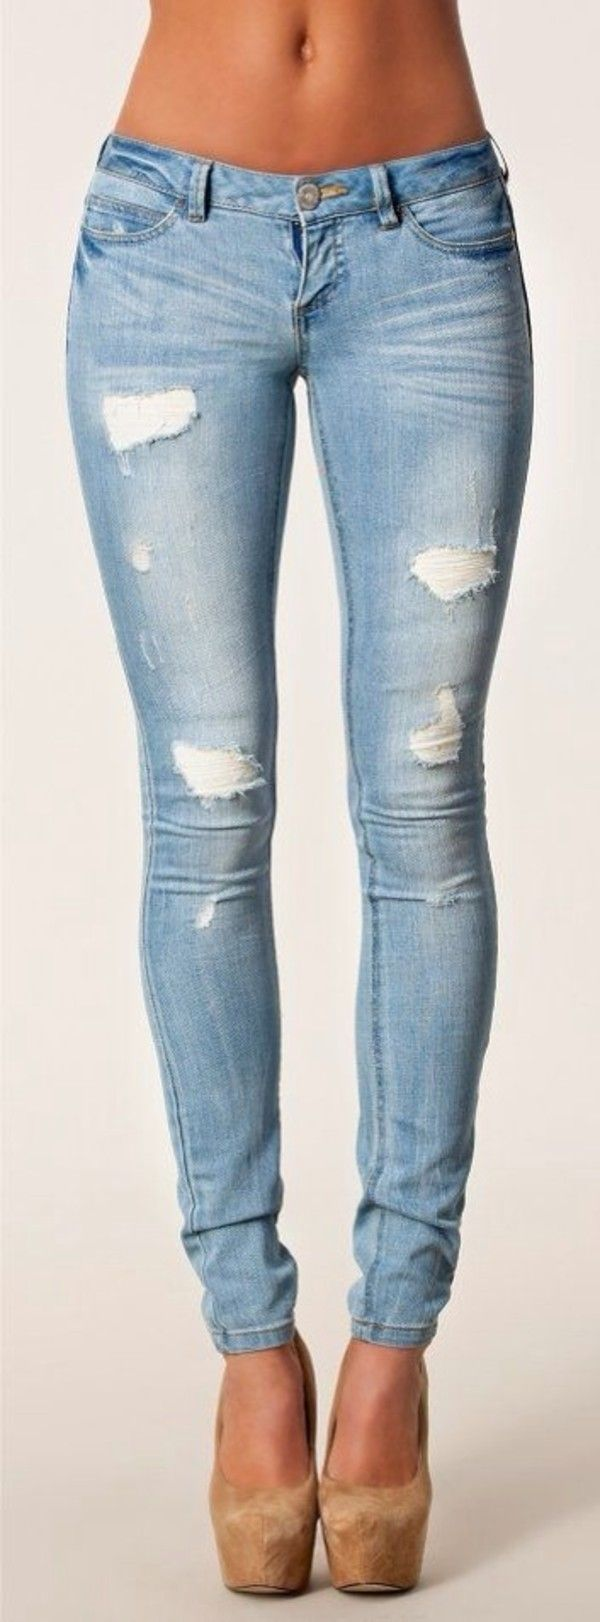 22 best ideas about Jeans on Pinterest | Ripped skinny jeans ...